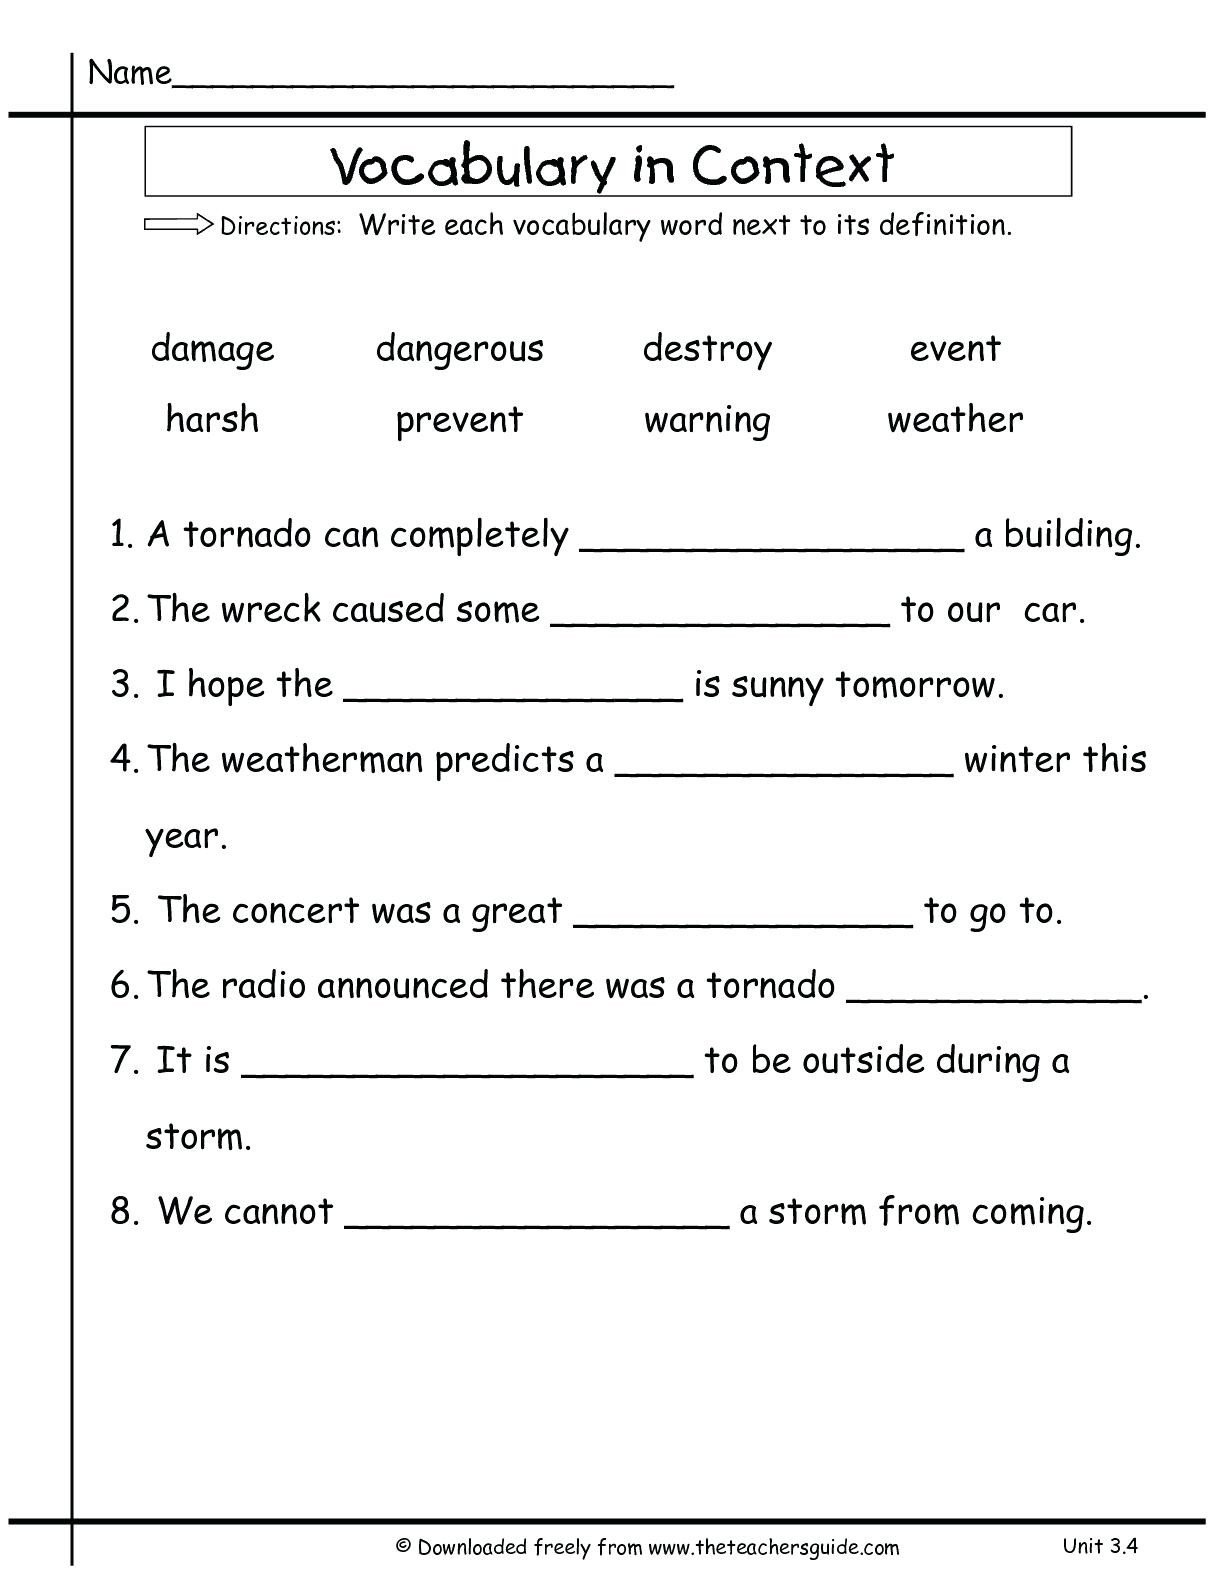 Subject Worksheets 3rd Grade 3rd Grade Vocabulary Worksheets for Educations Plex Math